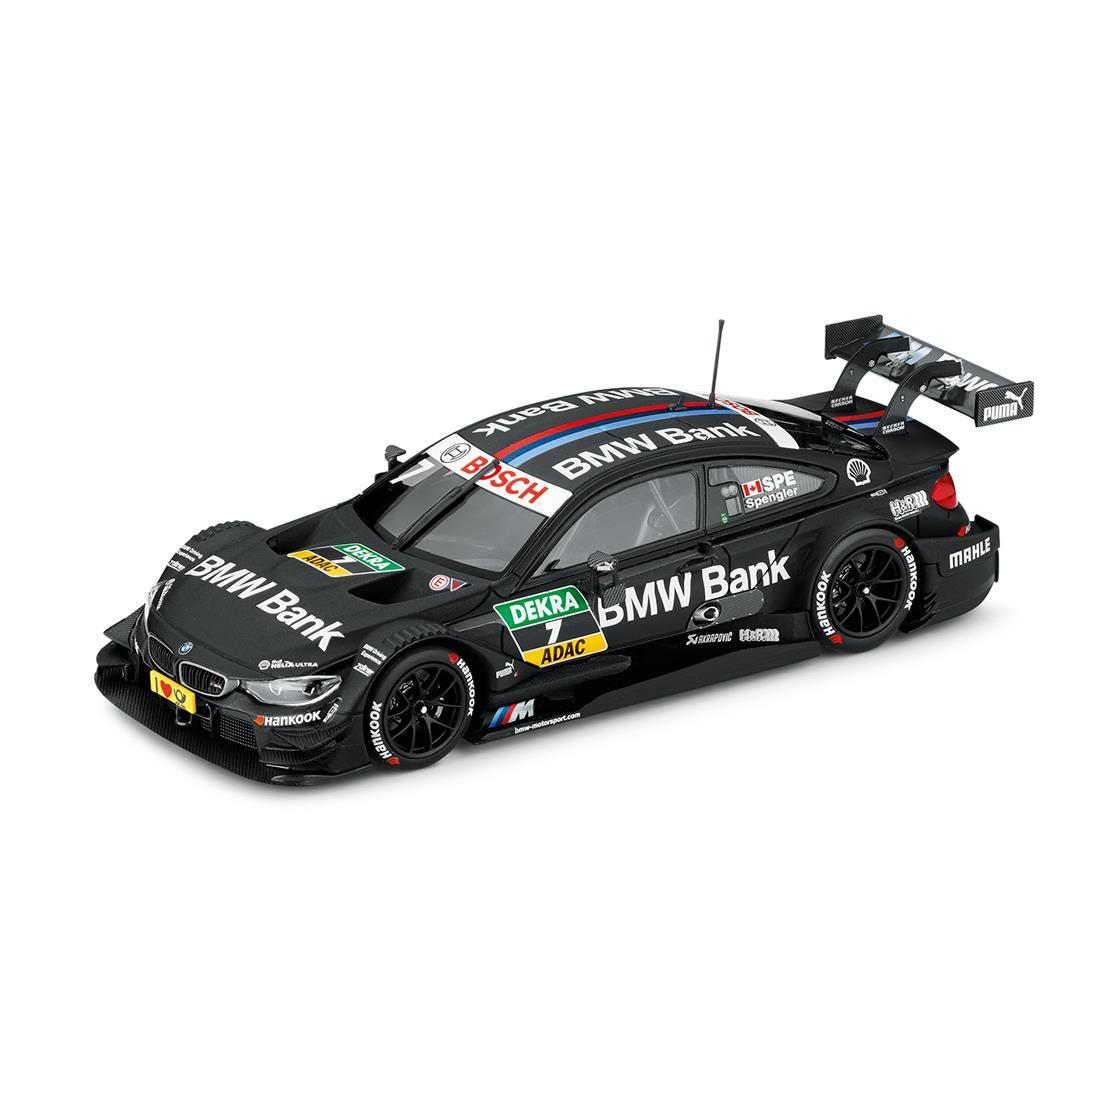 BMW miniature M4 DTM 2016 1:18 – DTM Team BMW Bank